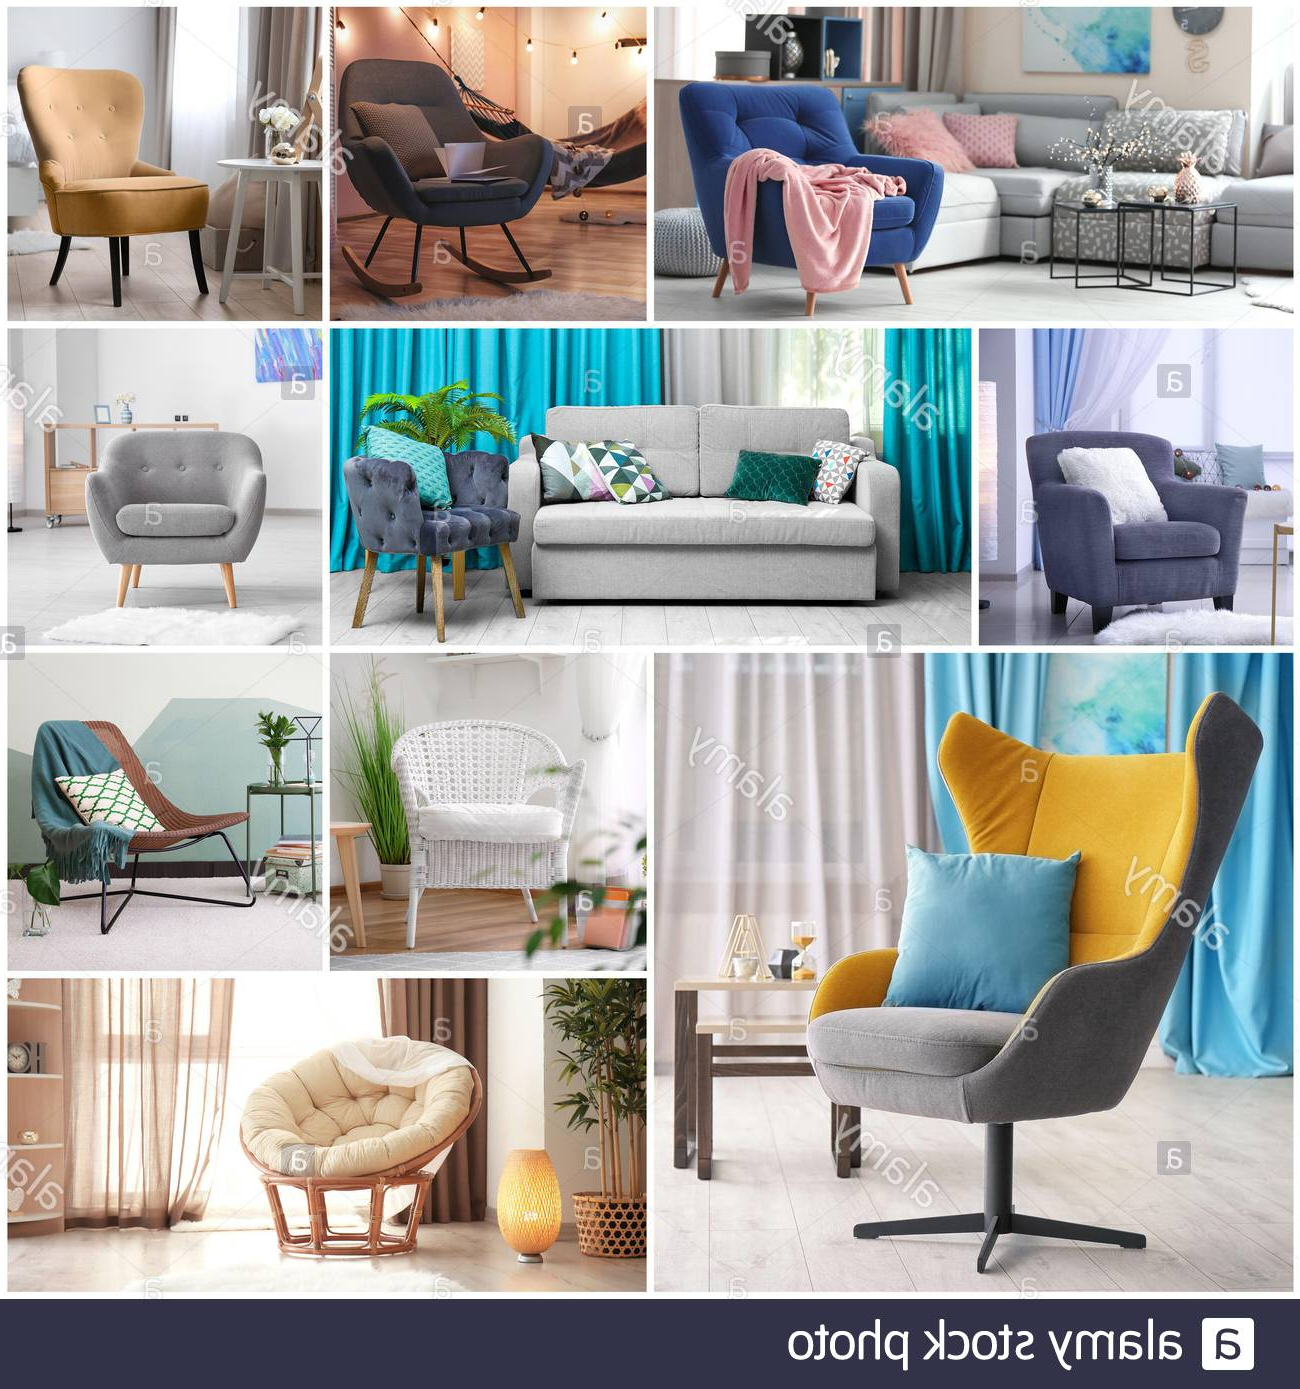 Recent Collage With Stylish And Comfortable Armchairs In Different Inside Live It Cozy Armchairs (View 17 of 20)